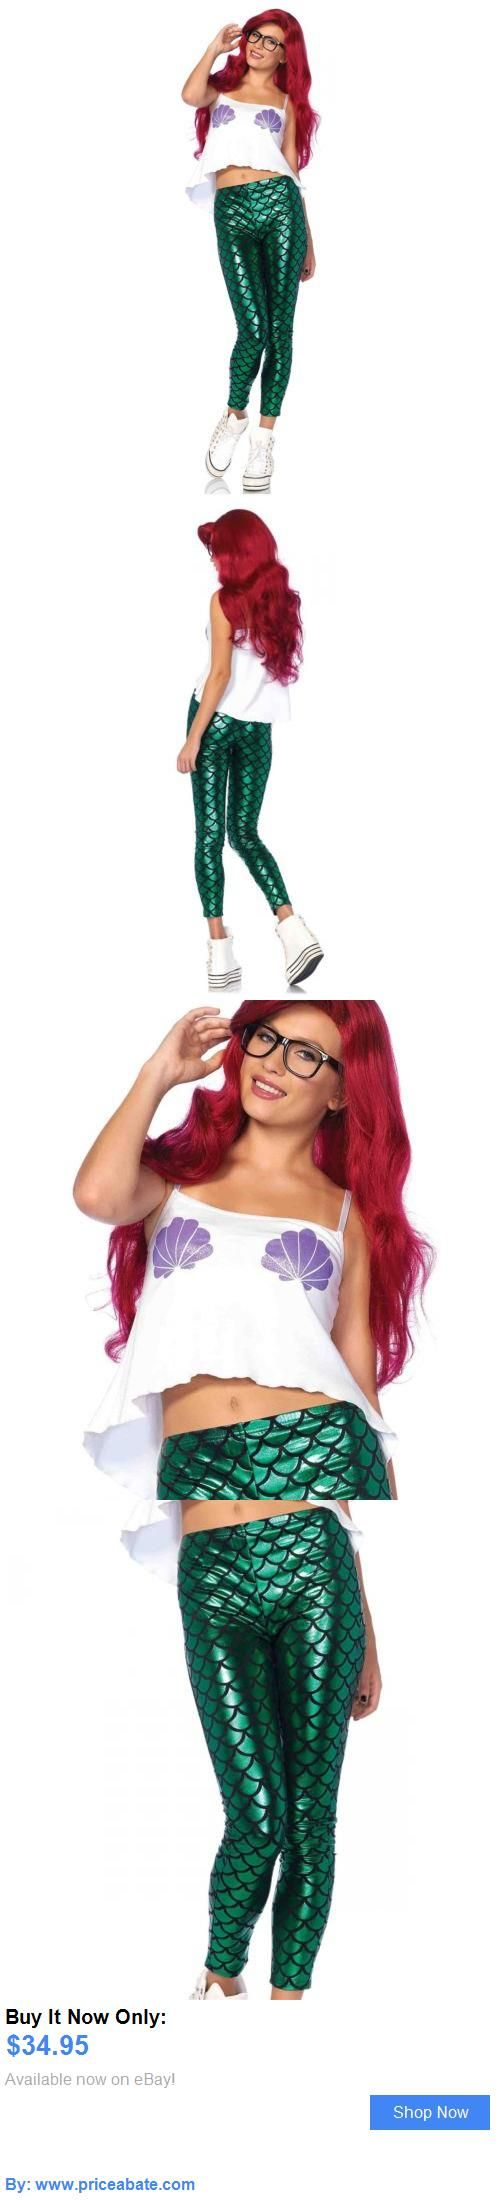 Women Costumes: Little Mermaid Costume Adult Hipster Halloween Fancy Dress BUY IT NOW ONLY: $34.95 #priceabateWomenCostumes OR #priceabate